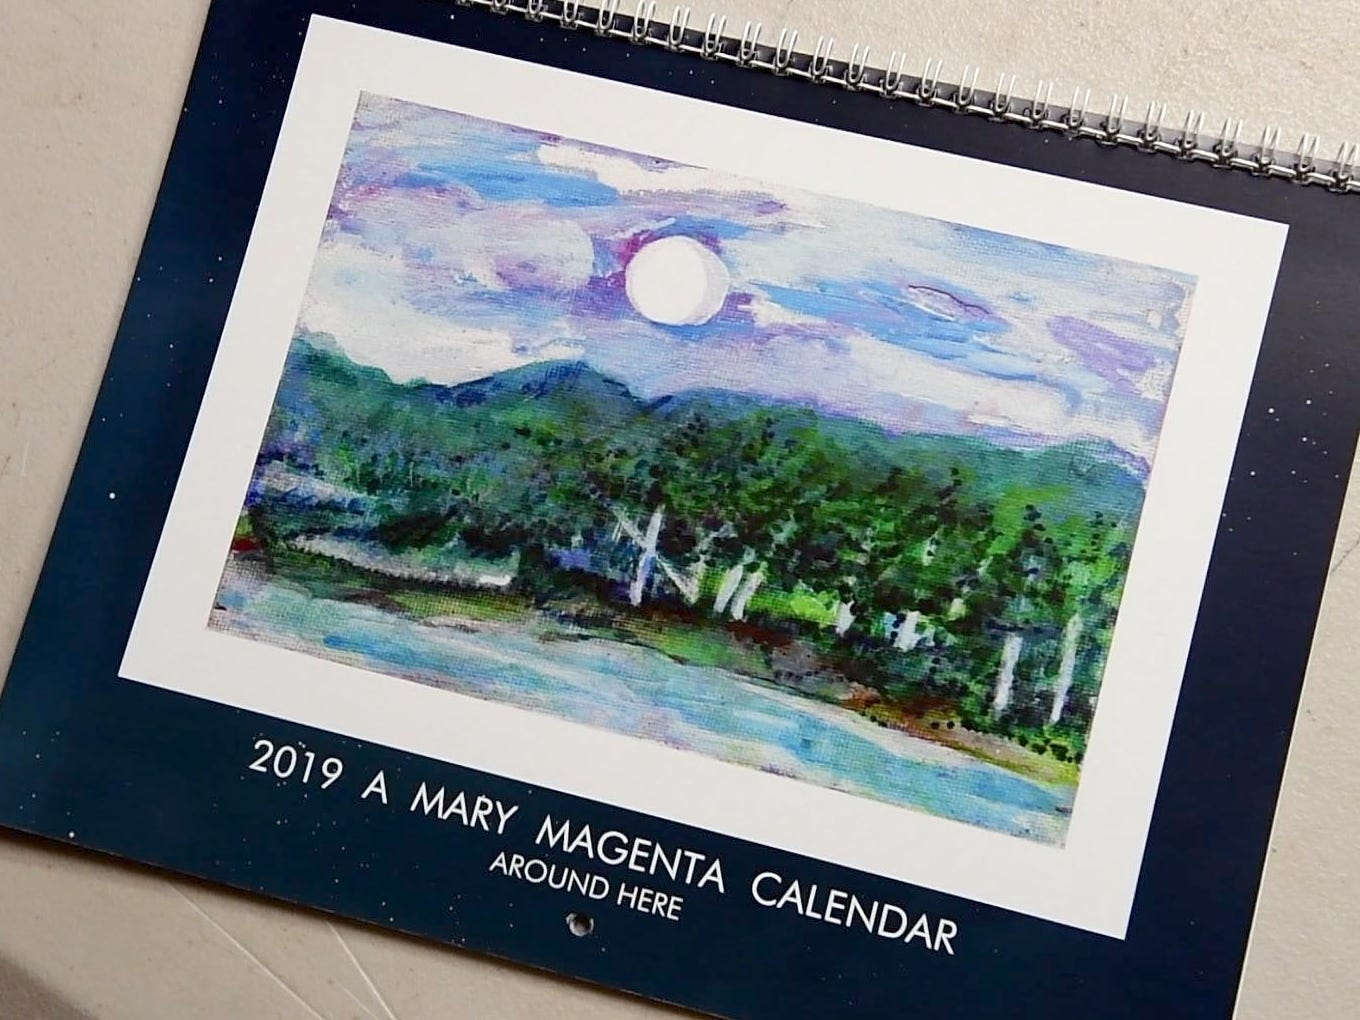 Local artist Mary Magenta's 2019 calendar 'Around Here' features nature scenes from around York county.